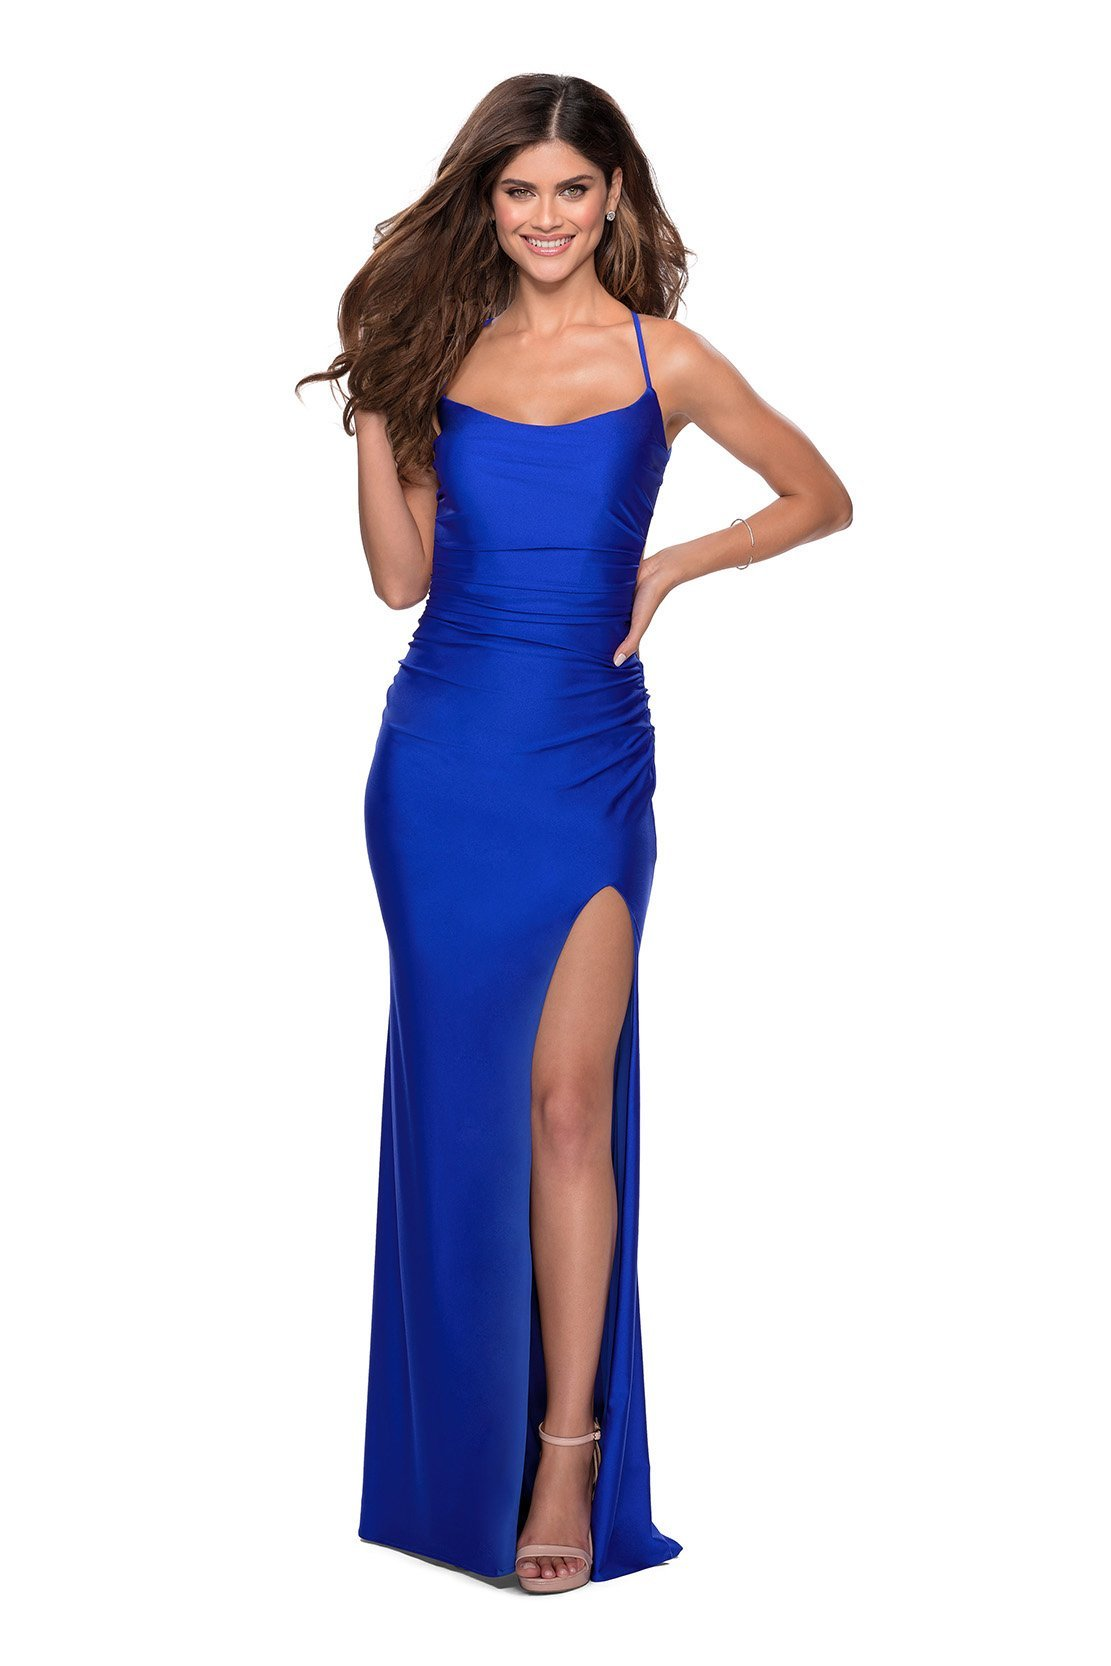 La Femme - Long Tie-Up Back High Leg Slit Dress 28296SC In Blue